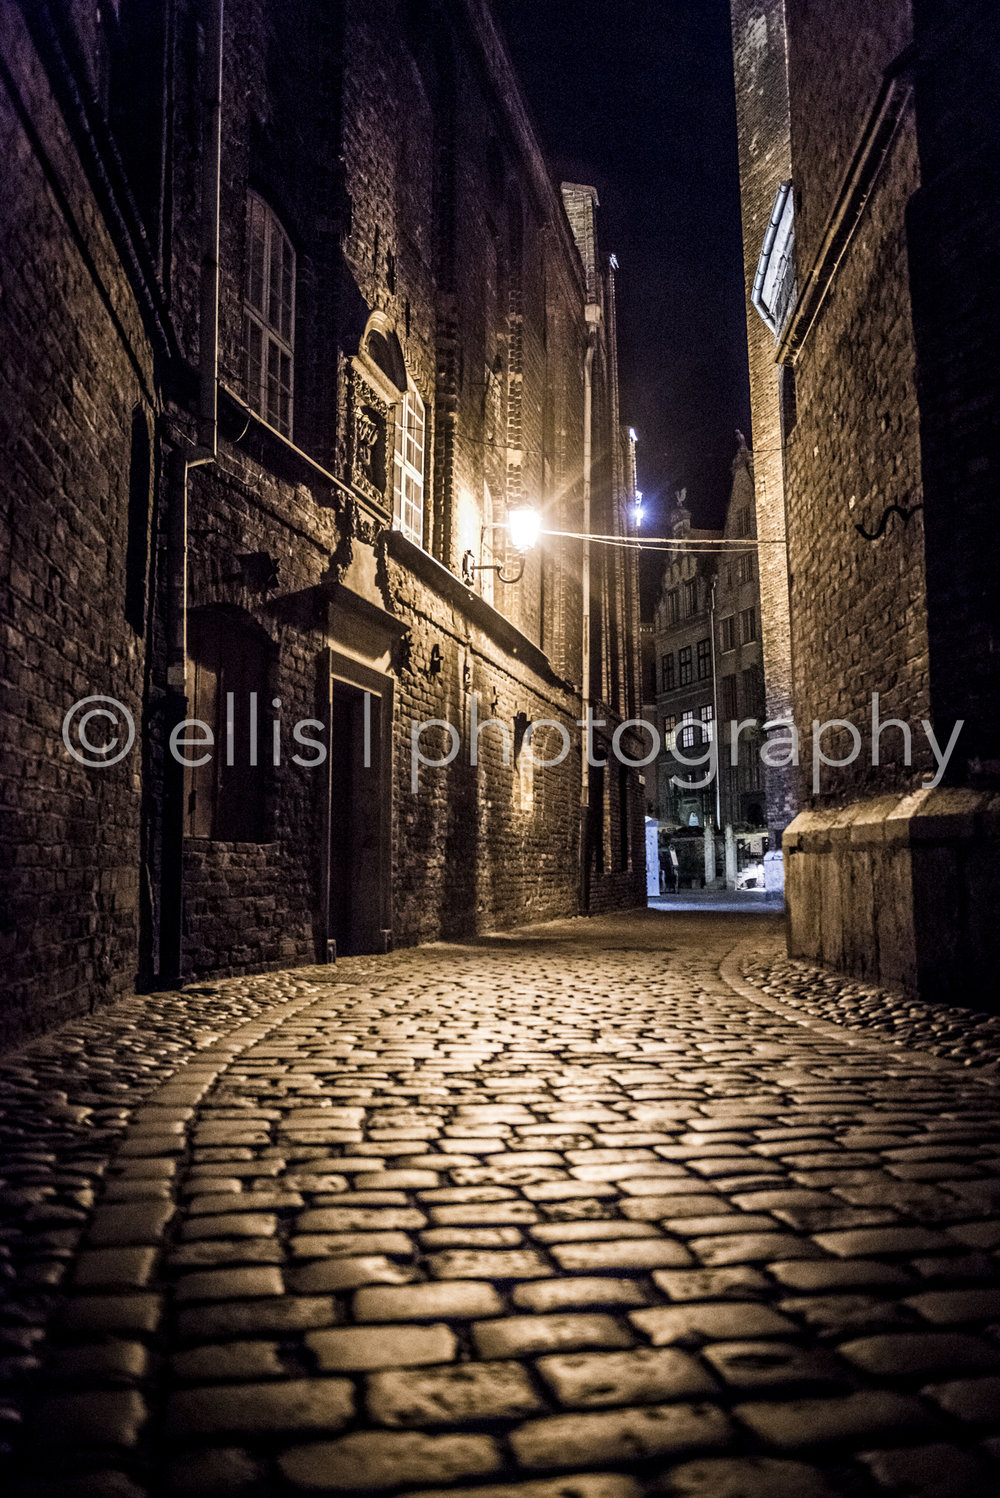 Night photography in Gdansk.While wandering around and exploring Gdansk by night, we walked through this narrow street with beautiful light and a brick street. I just had to take a picture. Ellis Photography, who likes to travel the world,